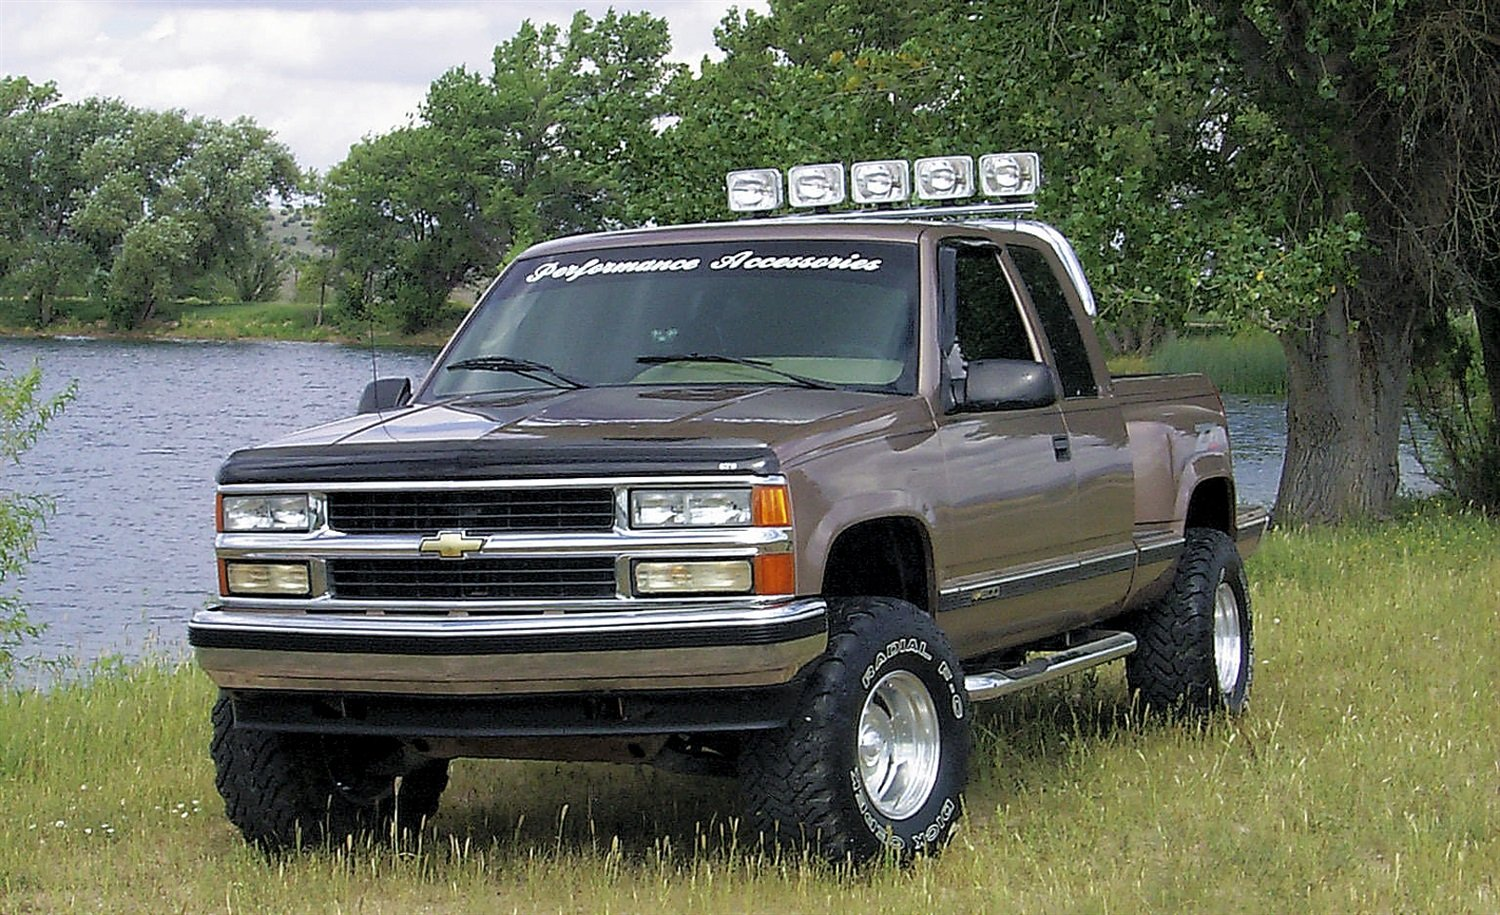 All Chevy 97 chevy k1500 parts : Amazon.com: Performance Accessories (113) Body Lift Kit for Chevy ...